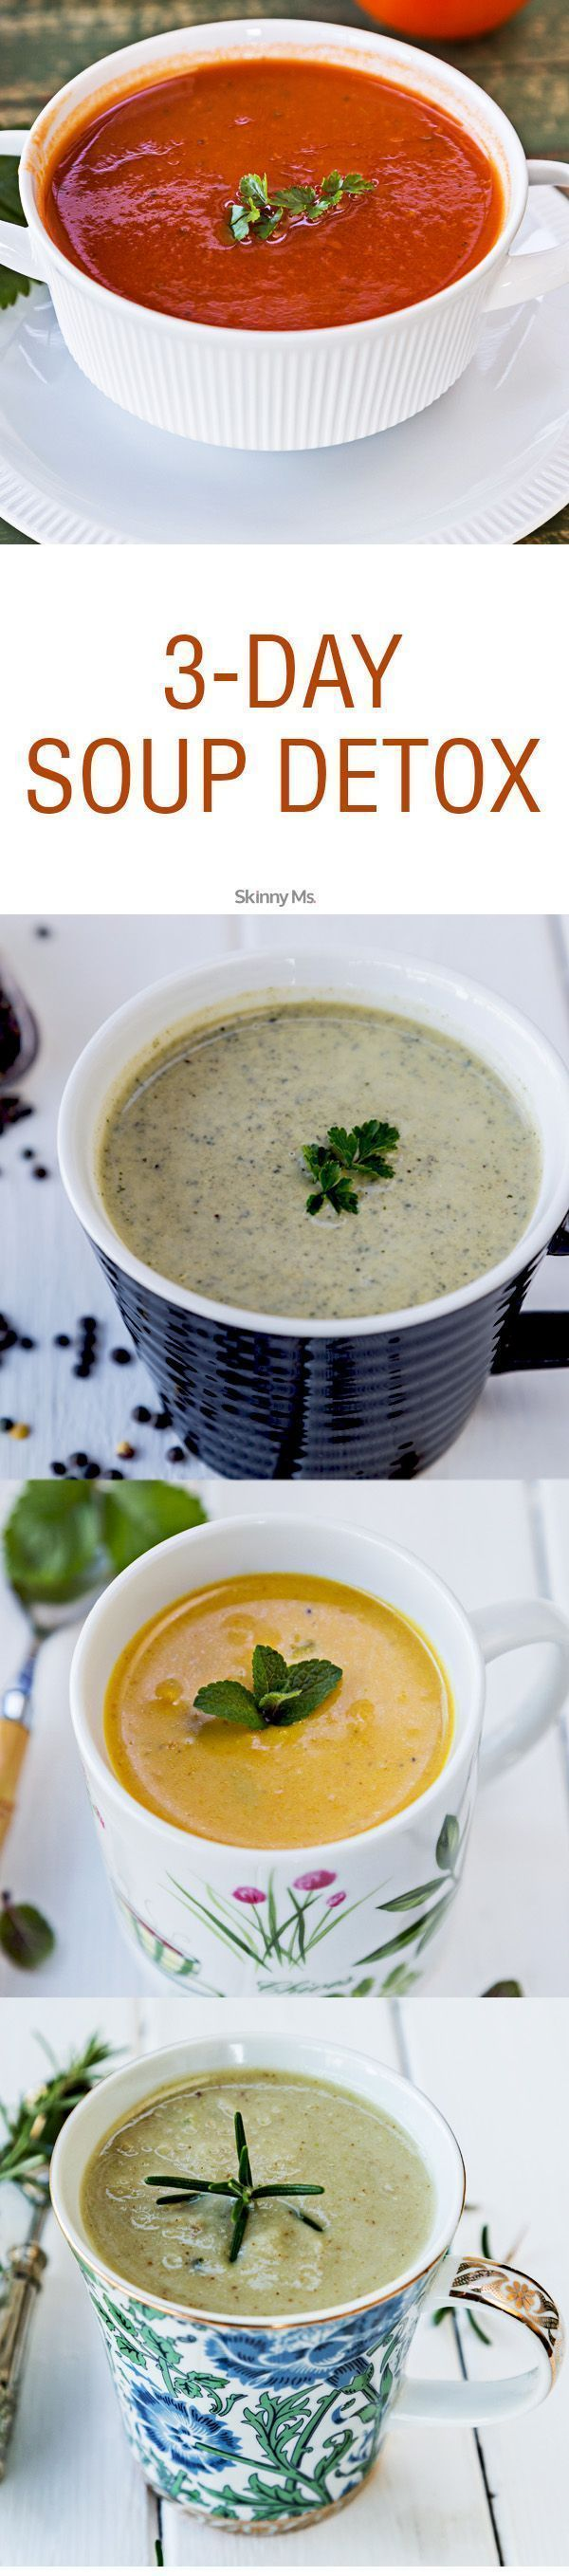 ... HEALTH & DETOX on Pinterest | Detox soup, Lemon detox and Detox drinks